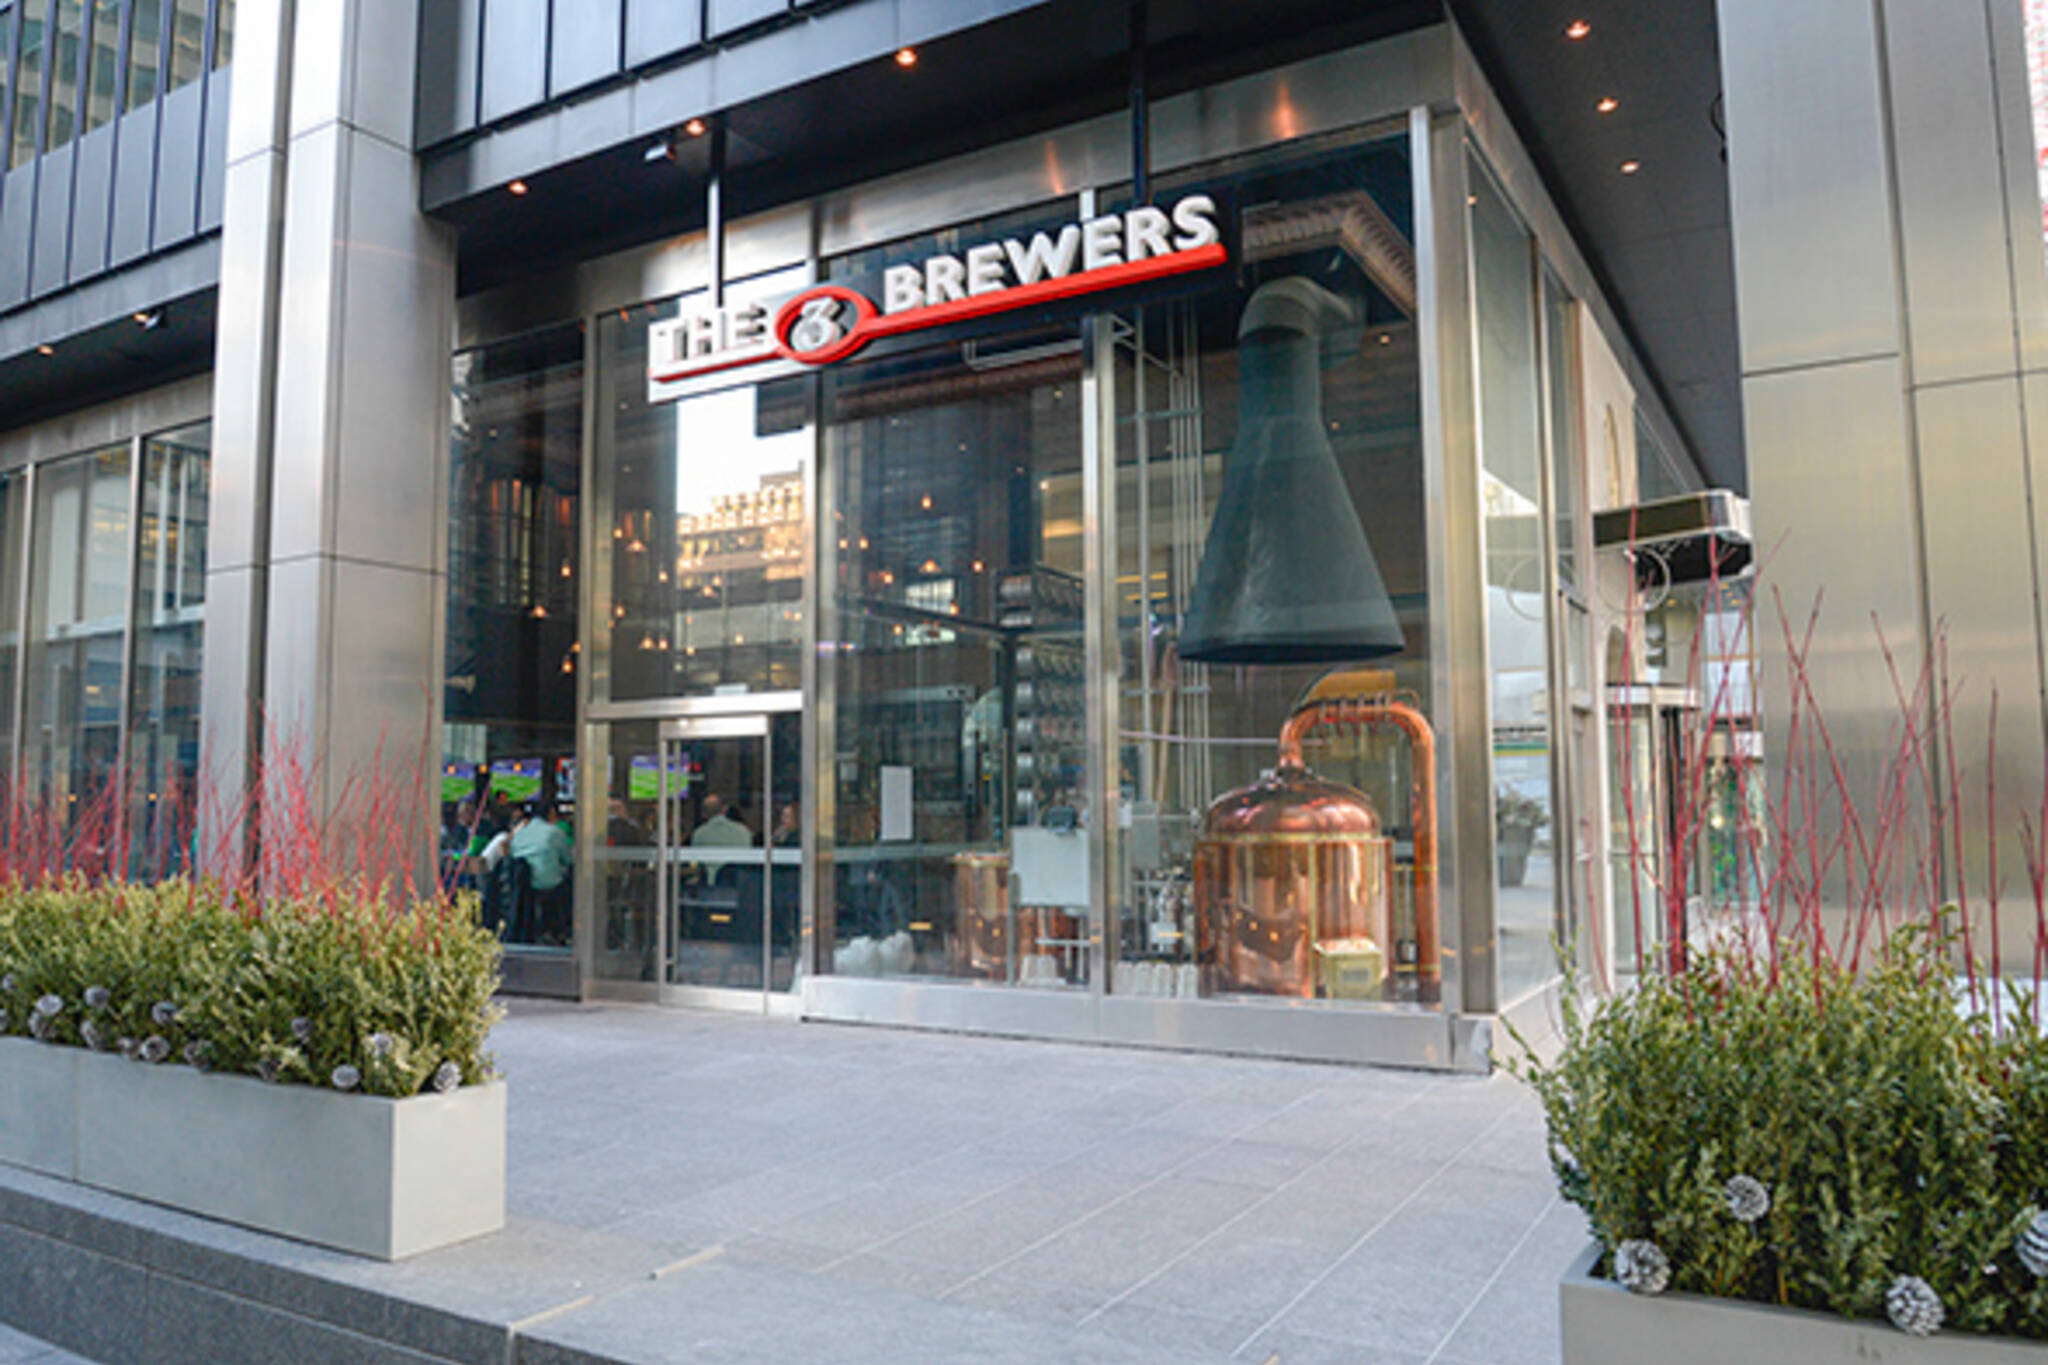 3 brewers financial district blogto toronto for El furniture warehouse toronto menu